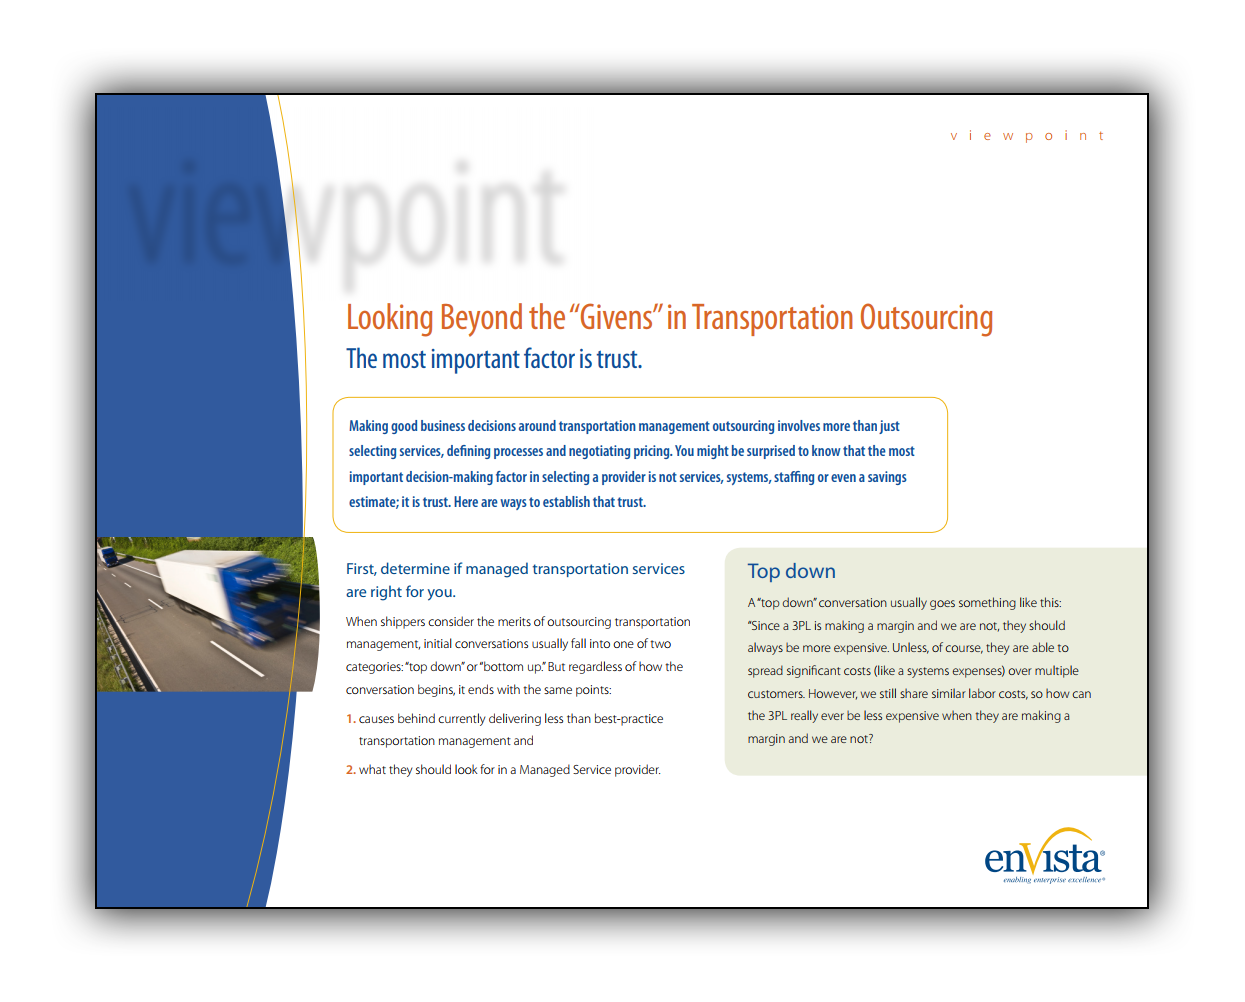 Image_looking-beyond-the-givens-in-transportation-outsourcing.png